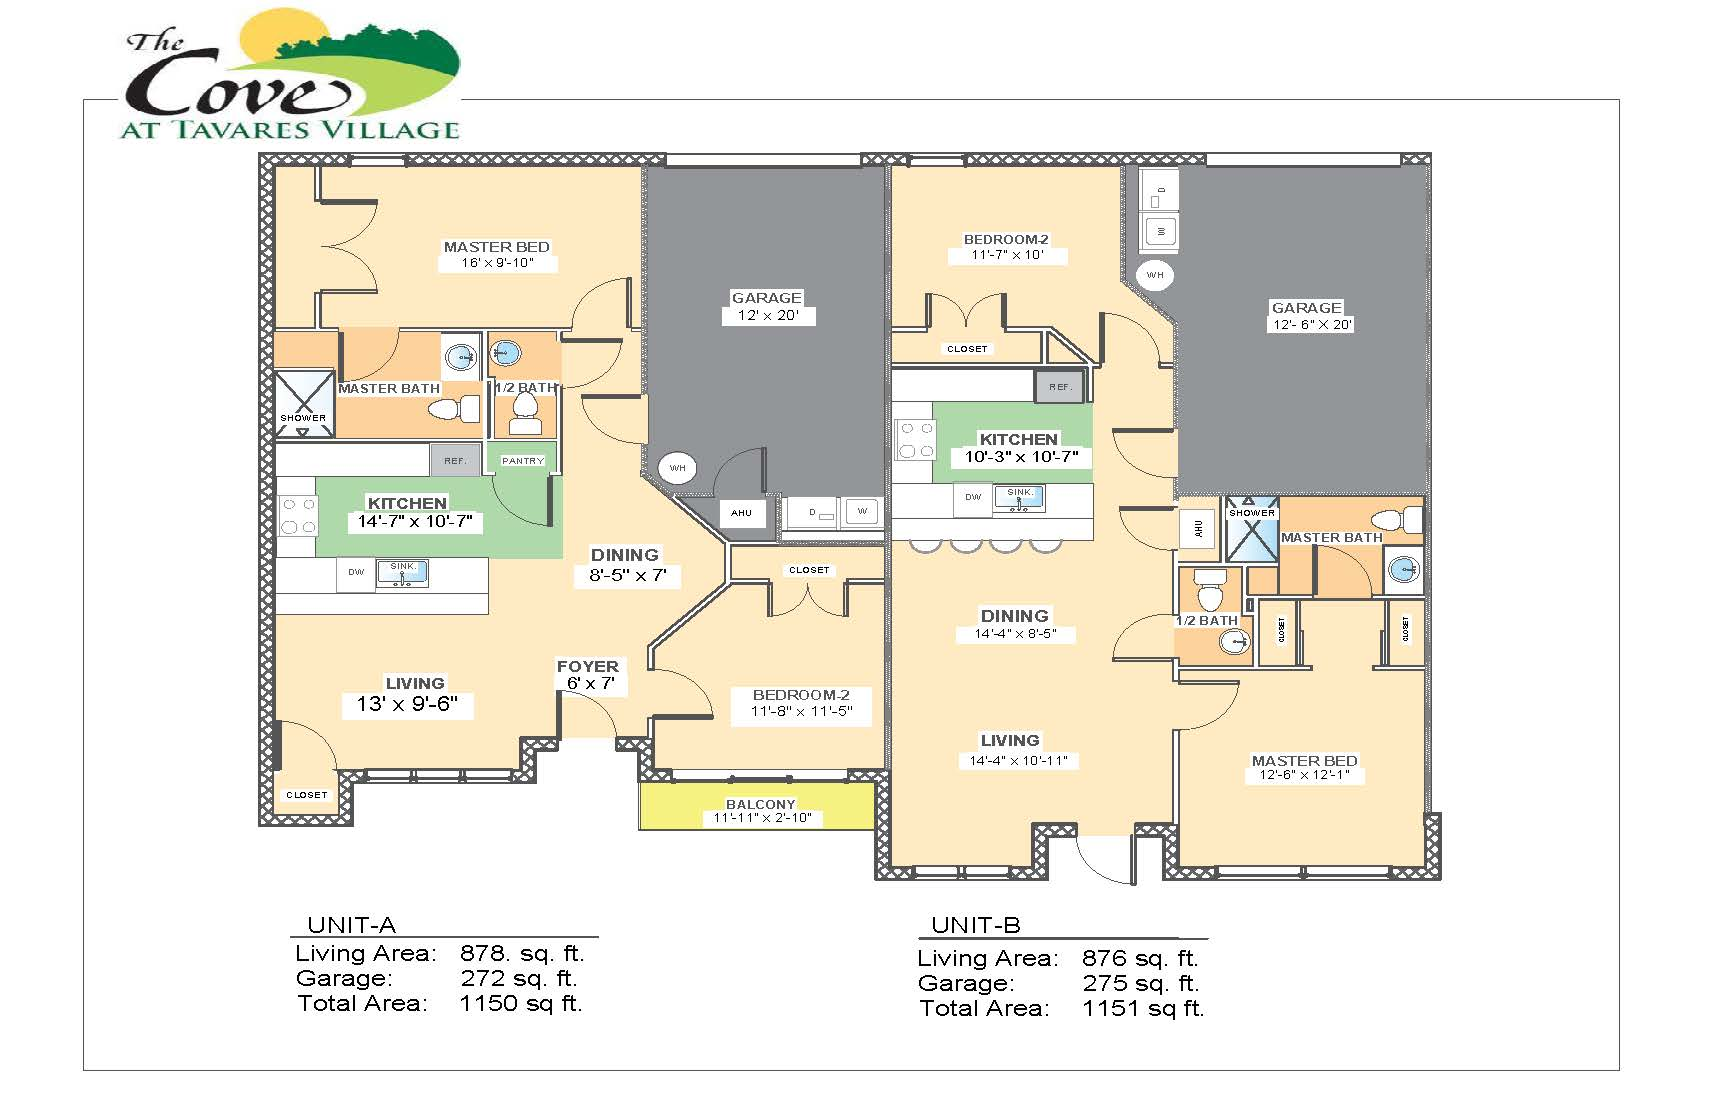 Tavares Florida Map.Independent Living Tavares Fl The Cove At Tavares Village